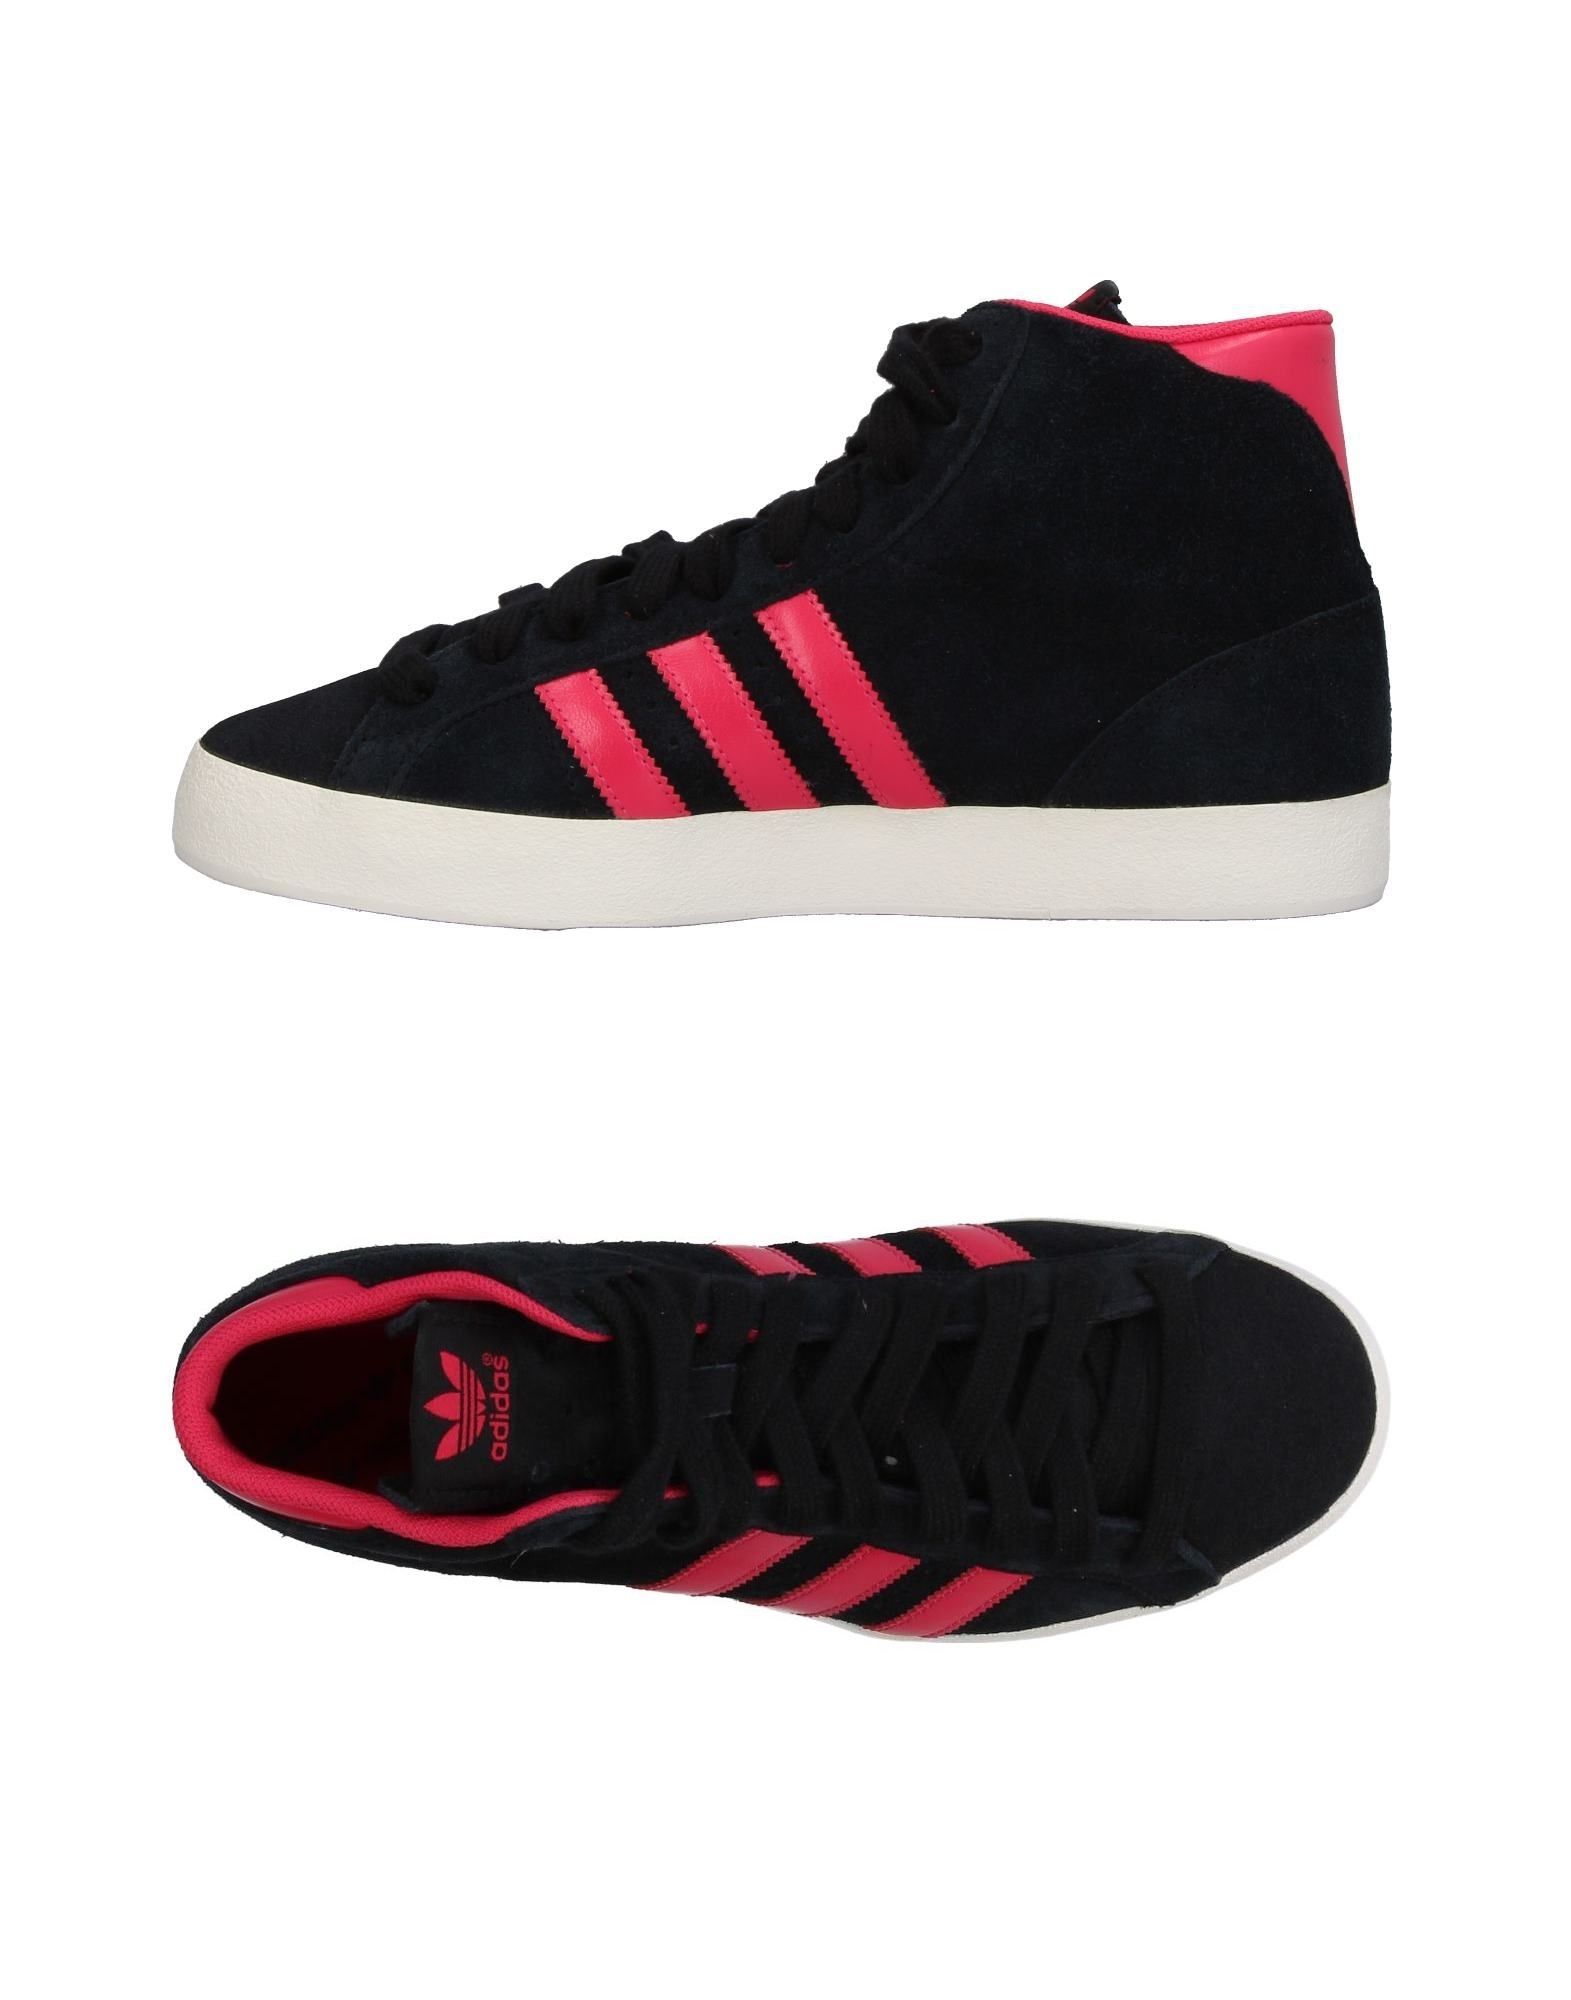 Adidas Originals Sneakers - Women Adidas Originals Sneakers online - on  United Kingdom - online 11411123OA 528b5e